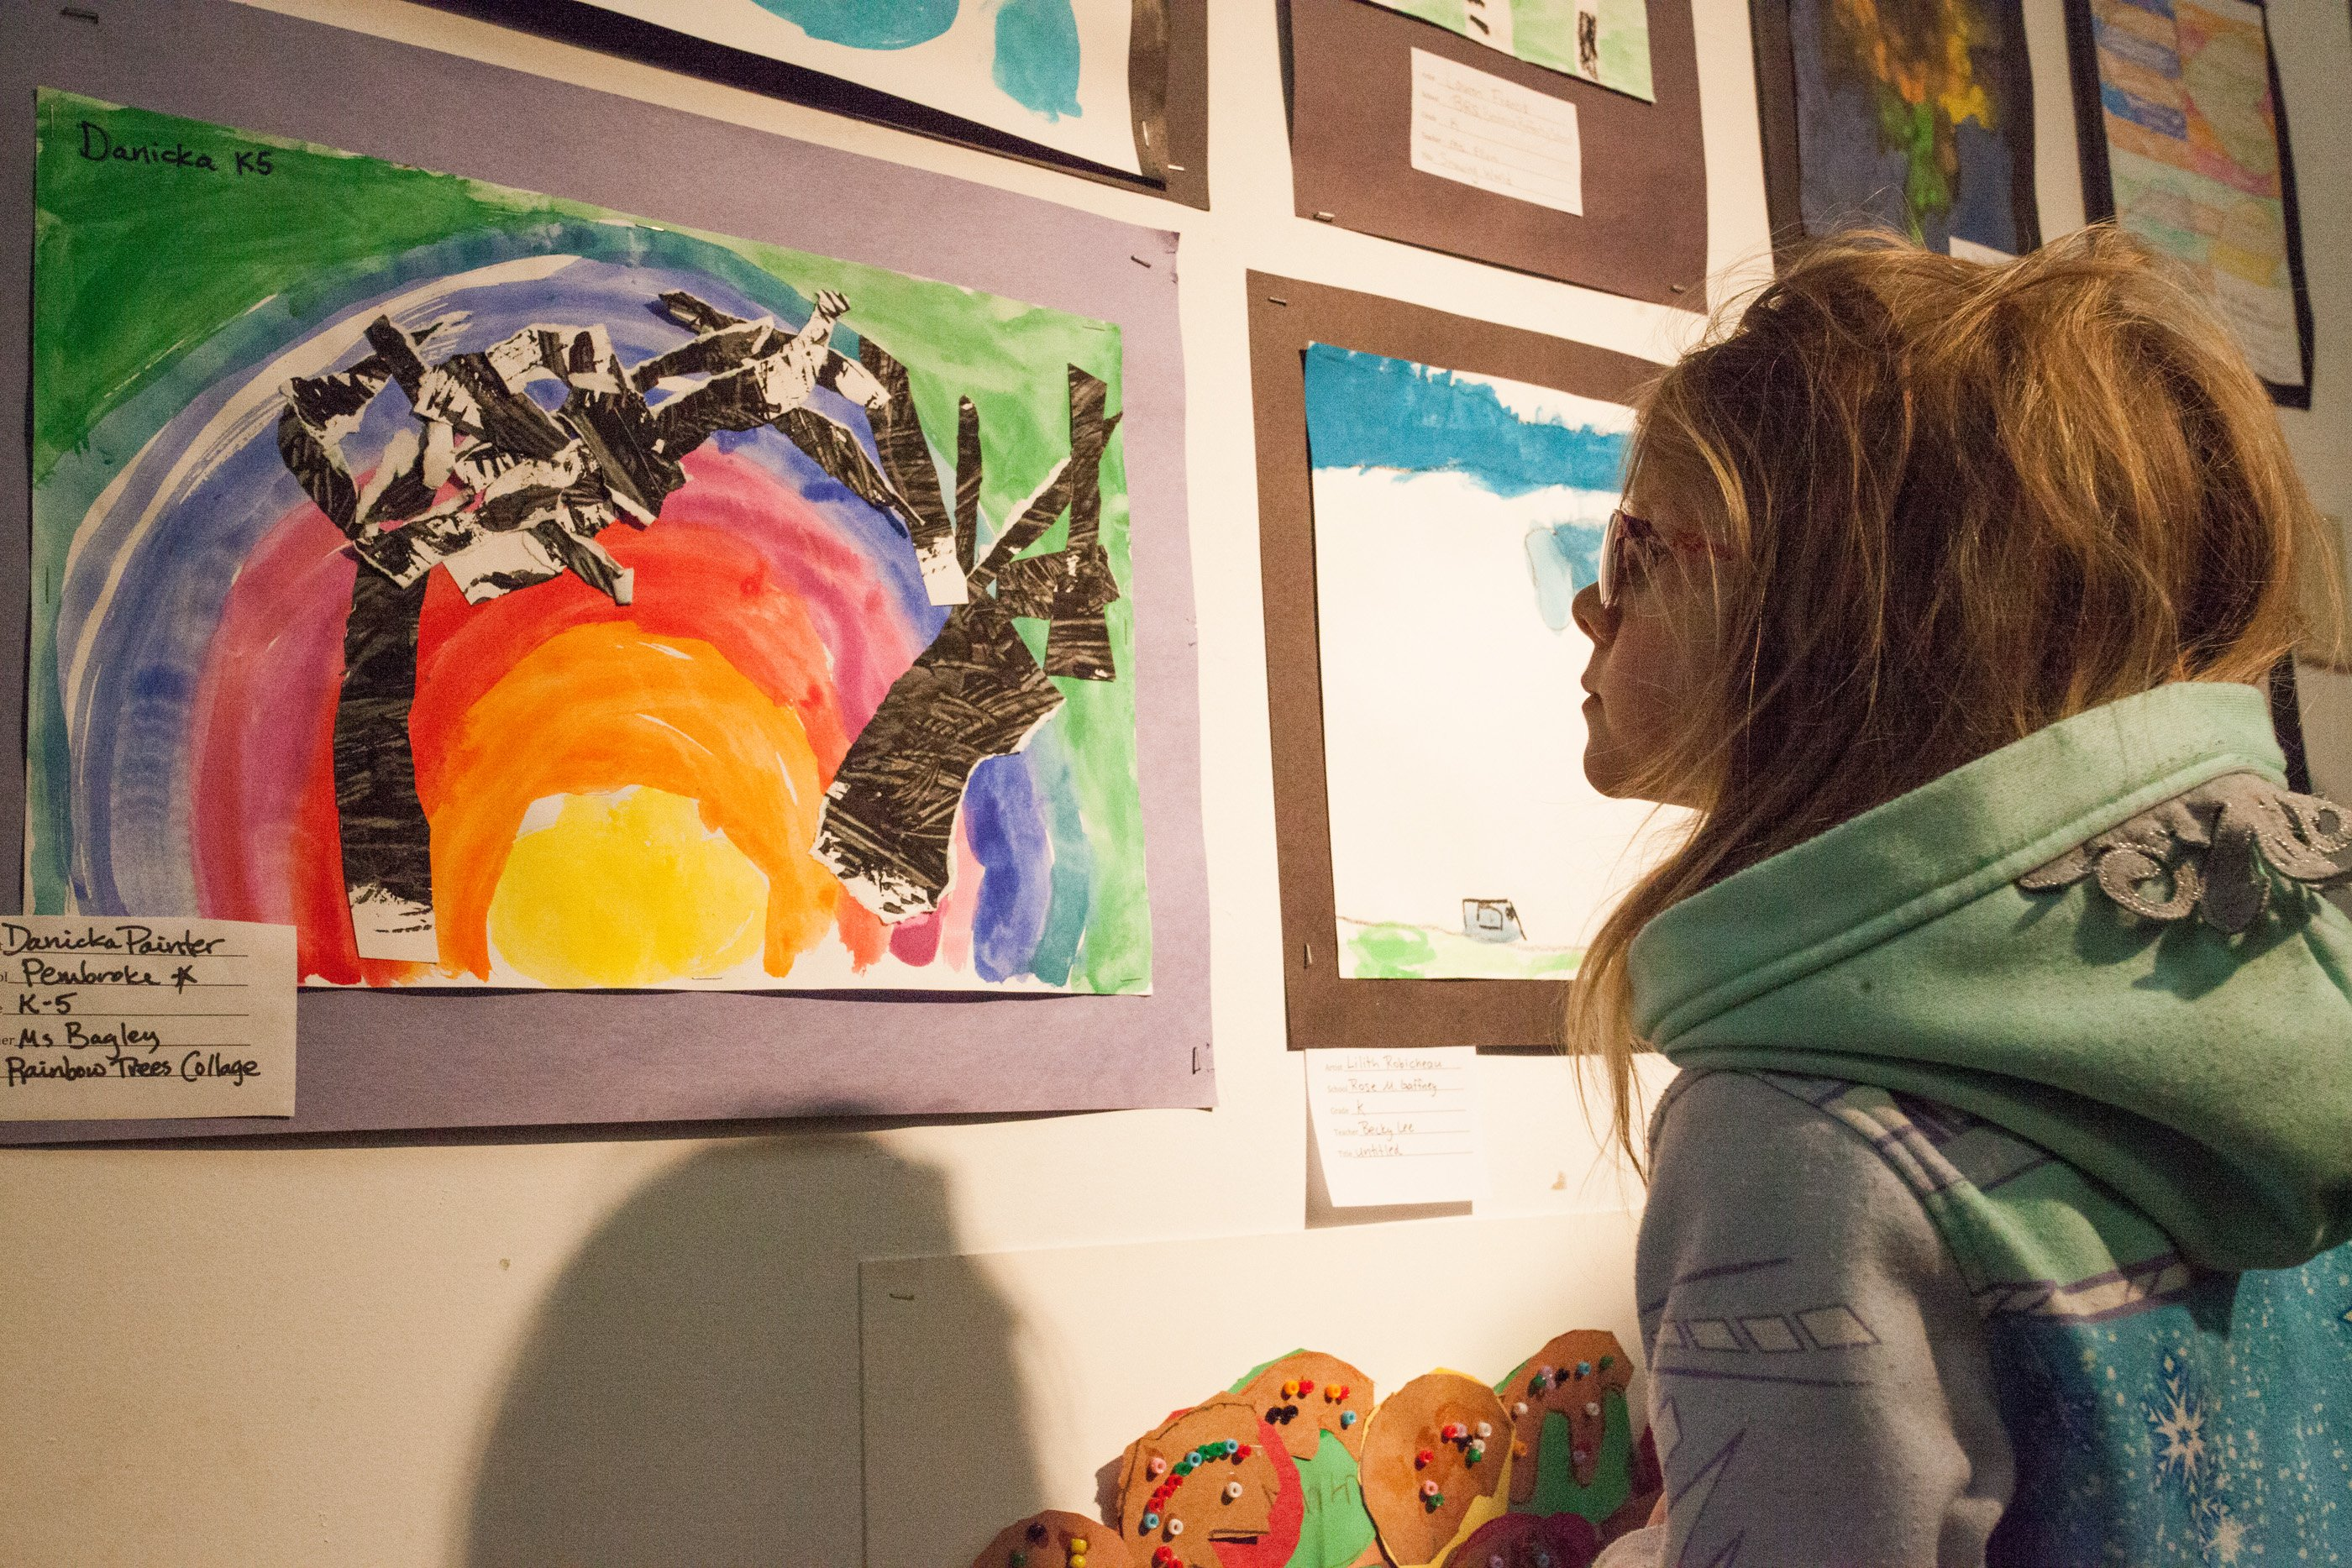 A young gallery goer enjoys her peers' artwork at Washington Street Gallery's annual Youth Art Month exhibition.